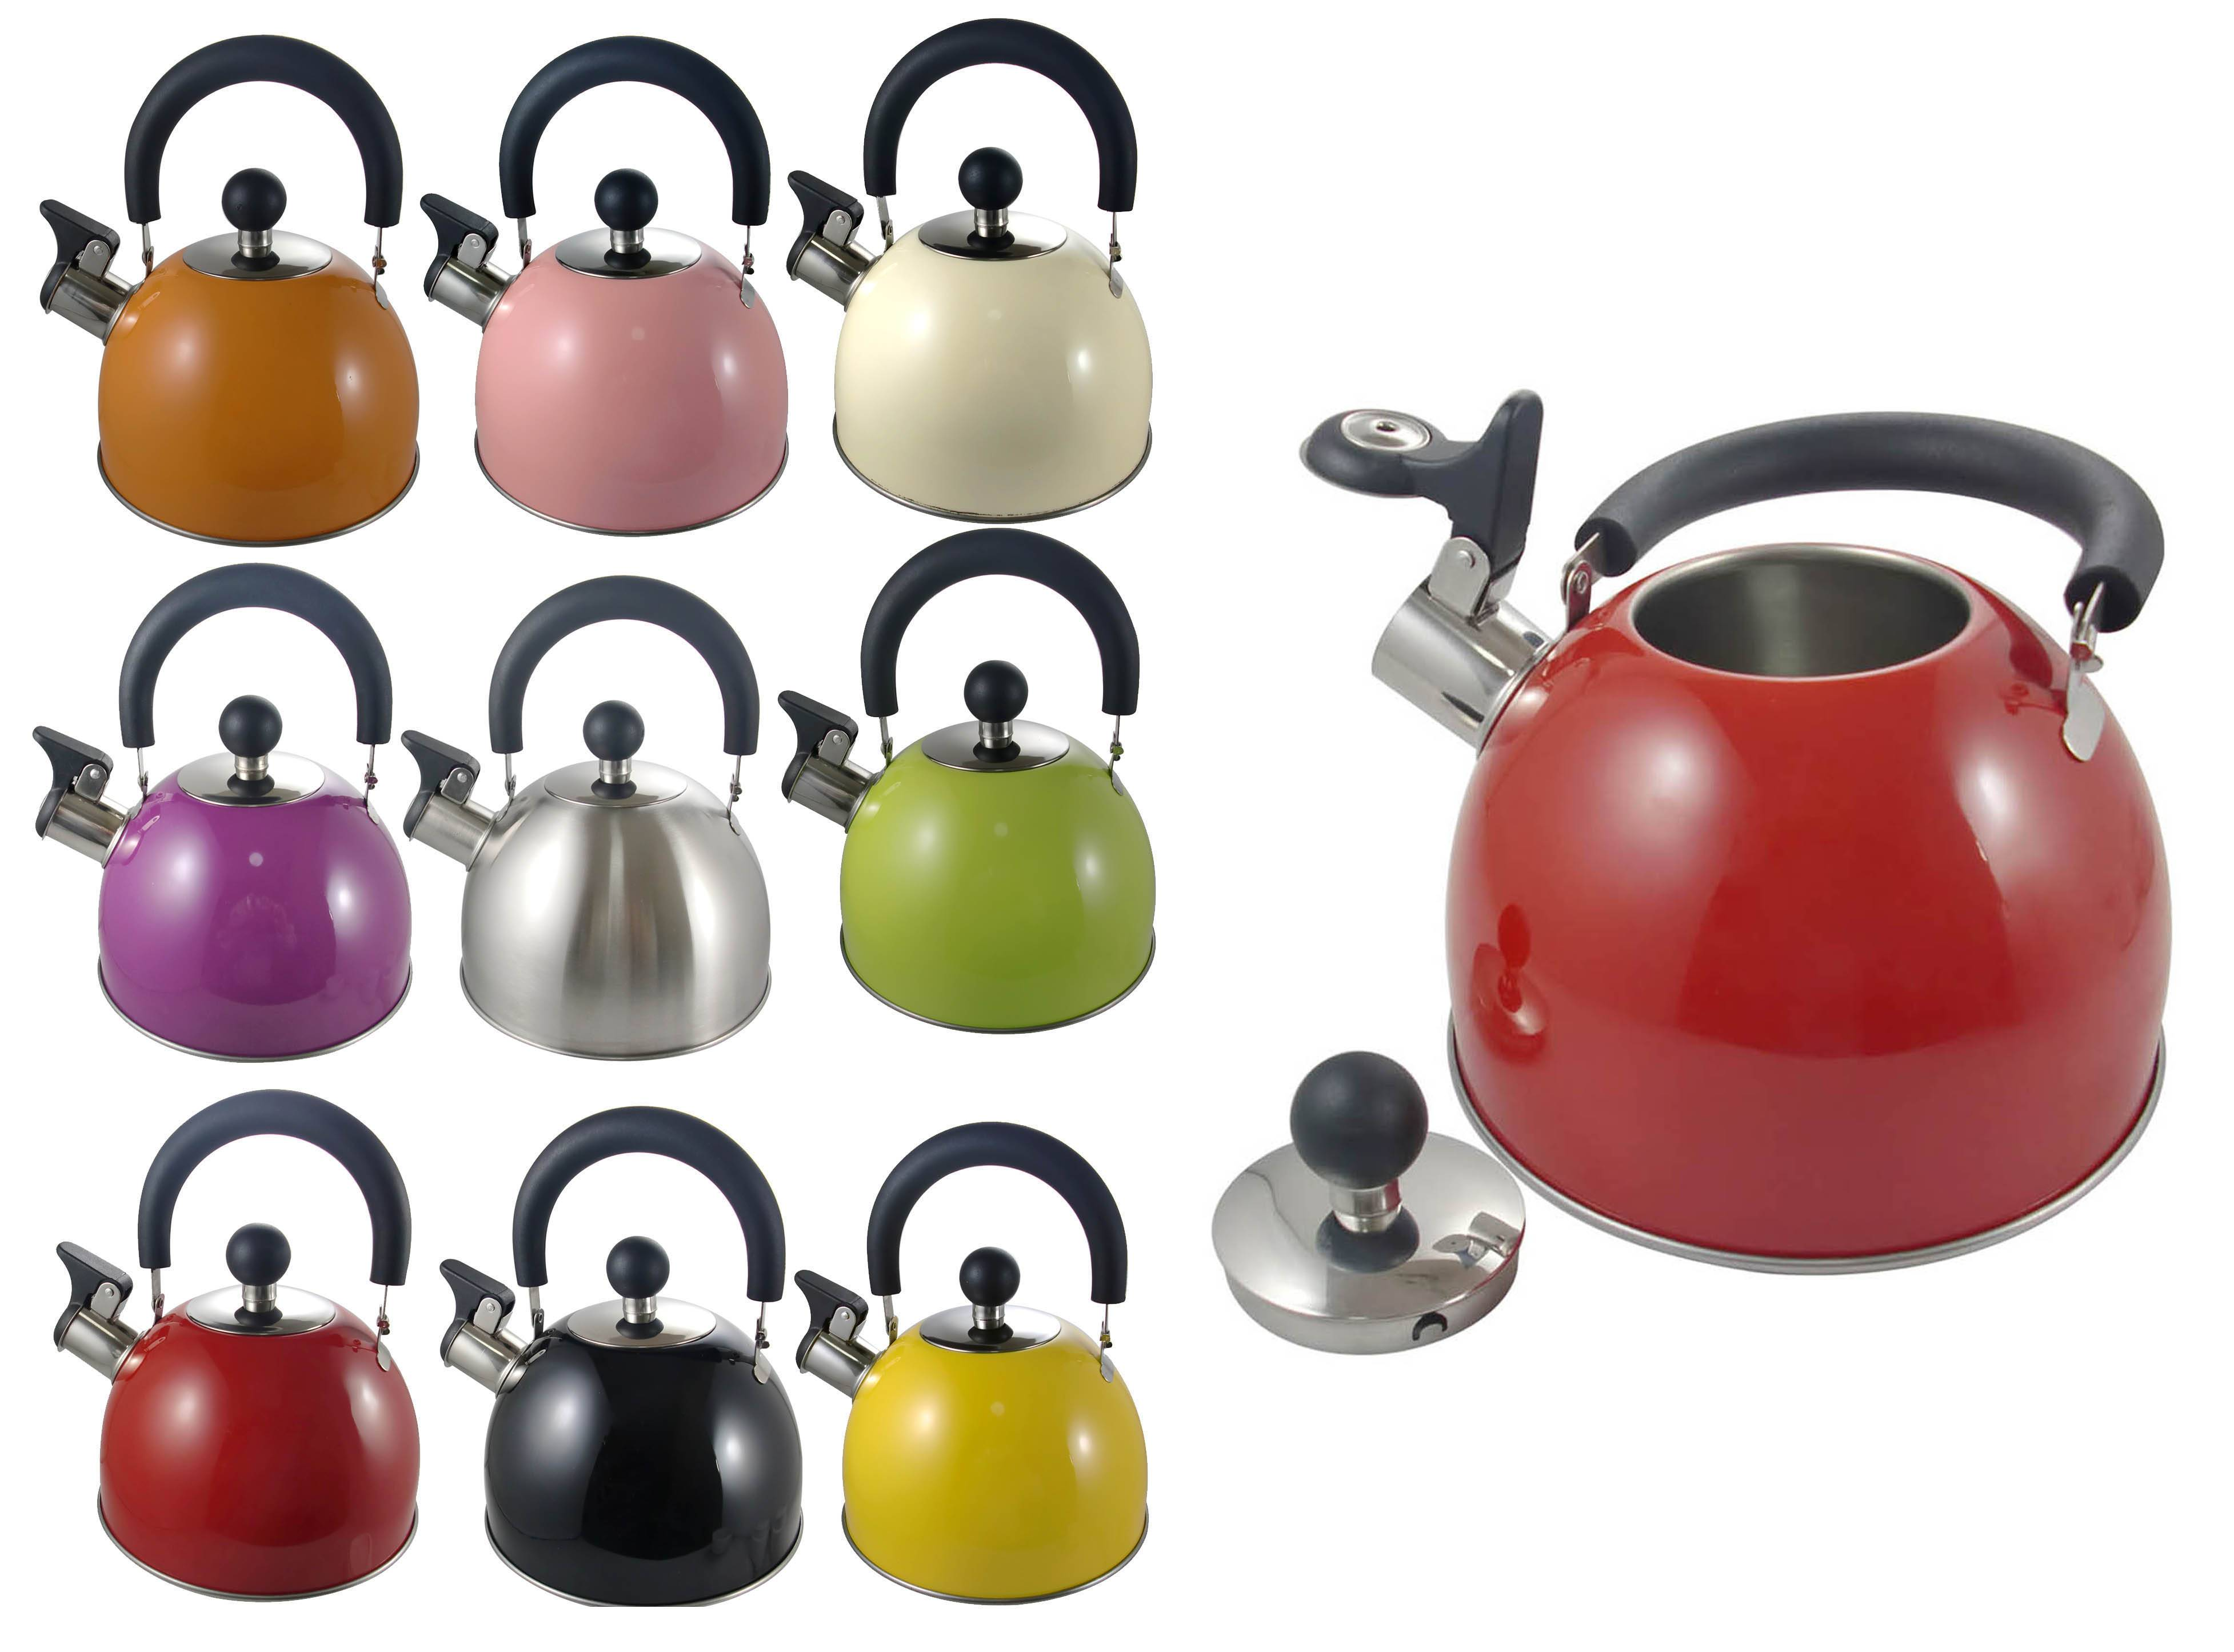 1.5L stainless steel whistling kettle